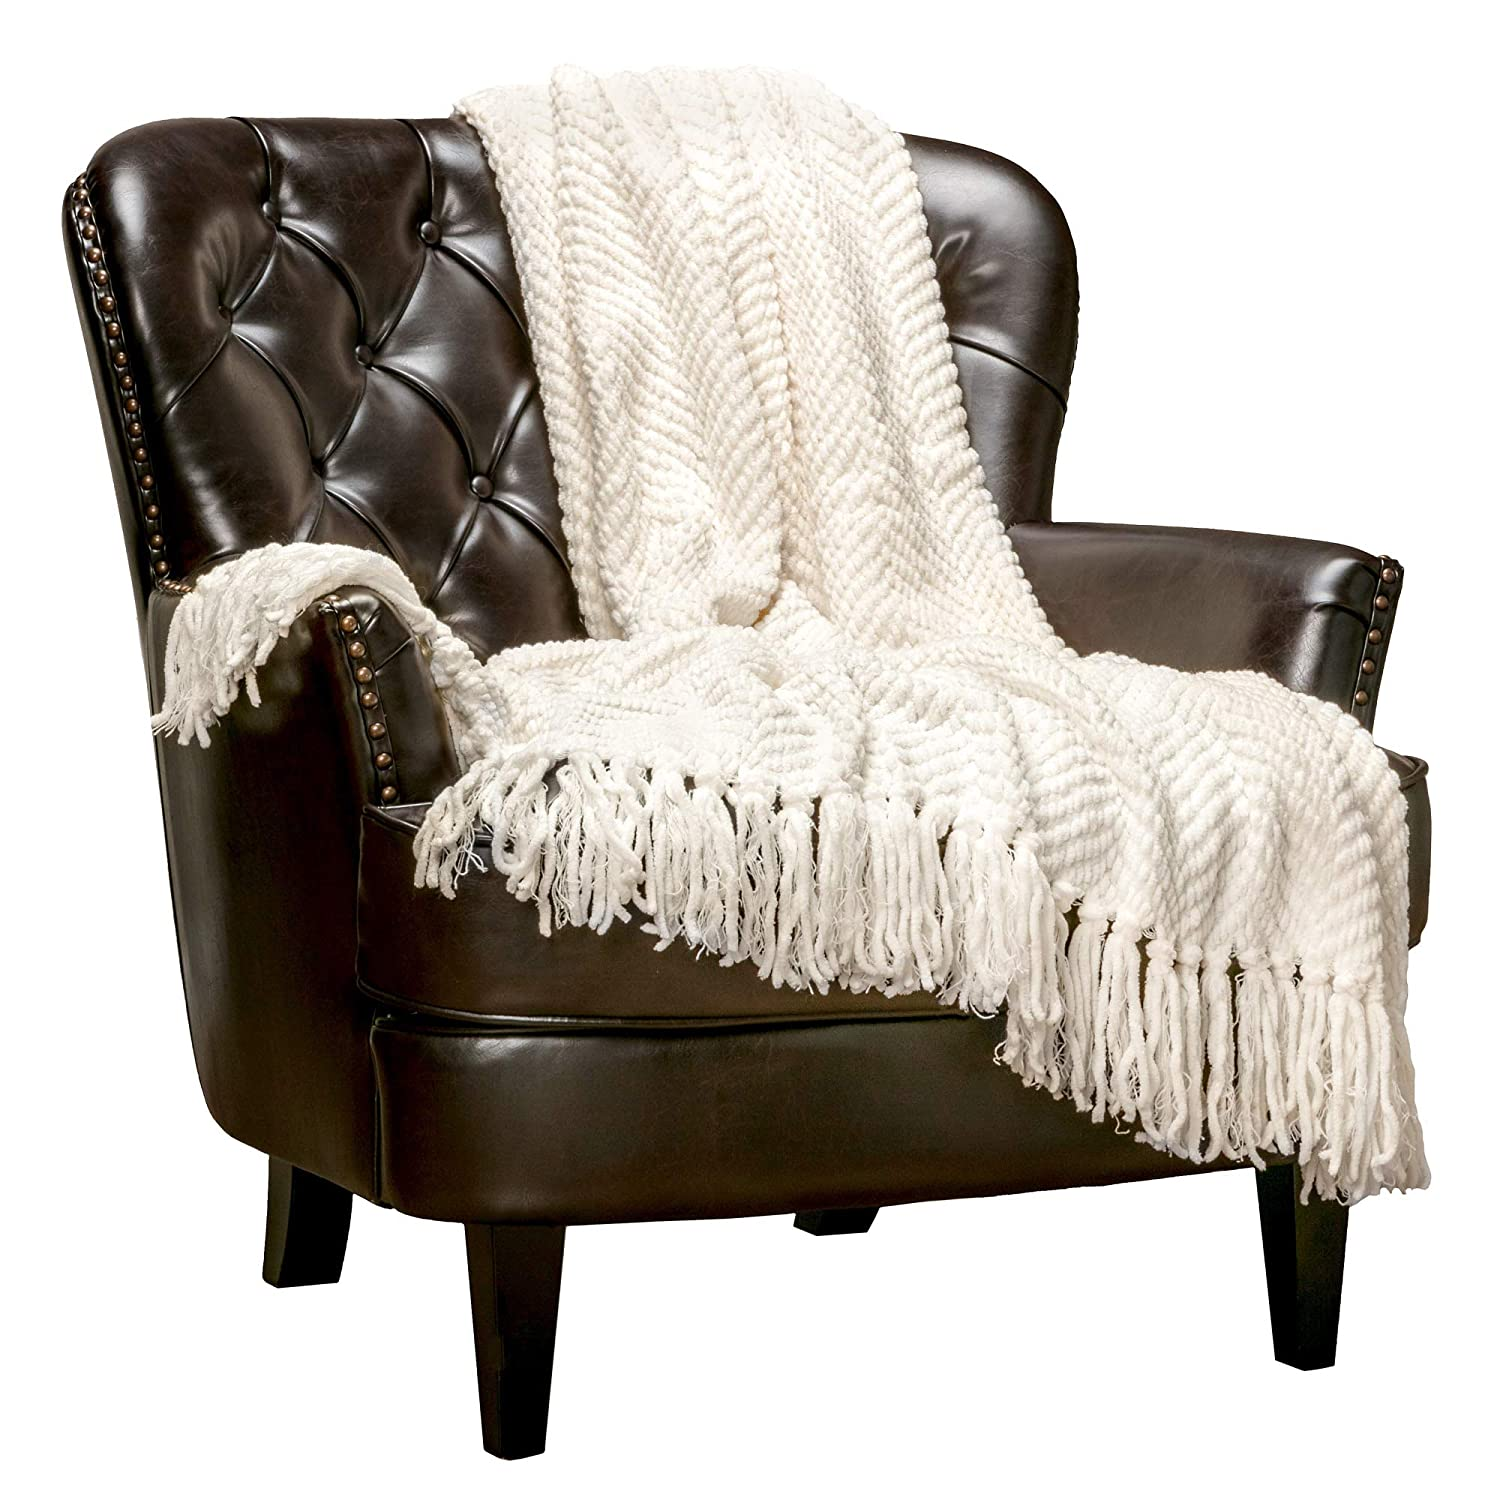 """Chanasya Textured Knitted Super Soft Throw Blanket with Tassels Warm Cozy Plush Lightweight Fluffy Woven Blanket for Bed Sofa Chair Couch Cover Living Bed Room Off White Throw Blanket(50""""x65"""")- Cream"""